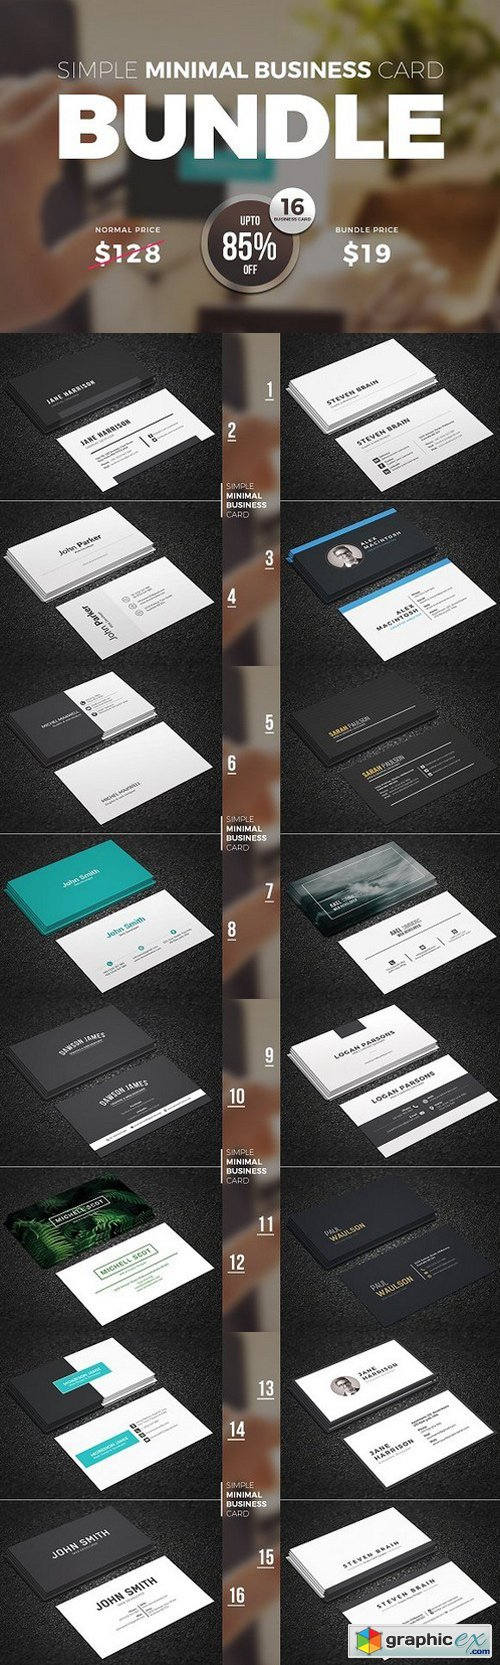 Clean Business Card Bundle 990247